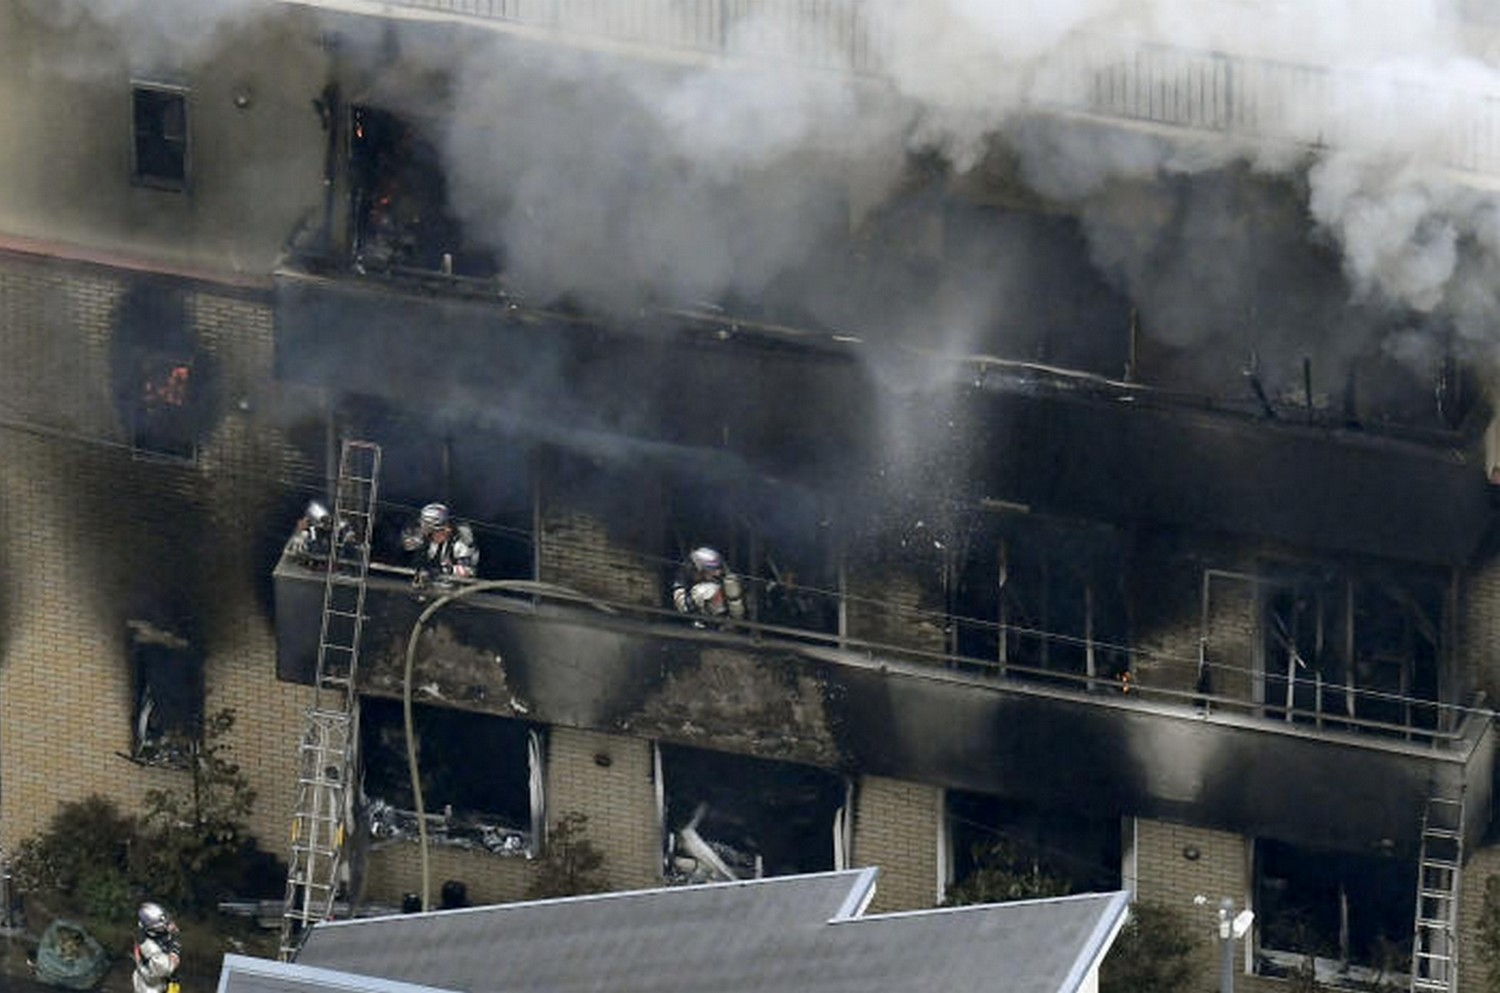 Dozens killed or injured in Kyoto Animation studio fire in Japan